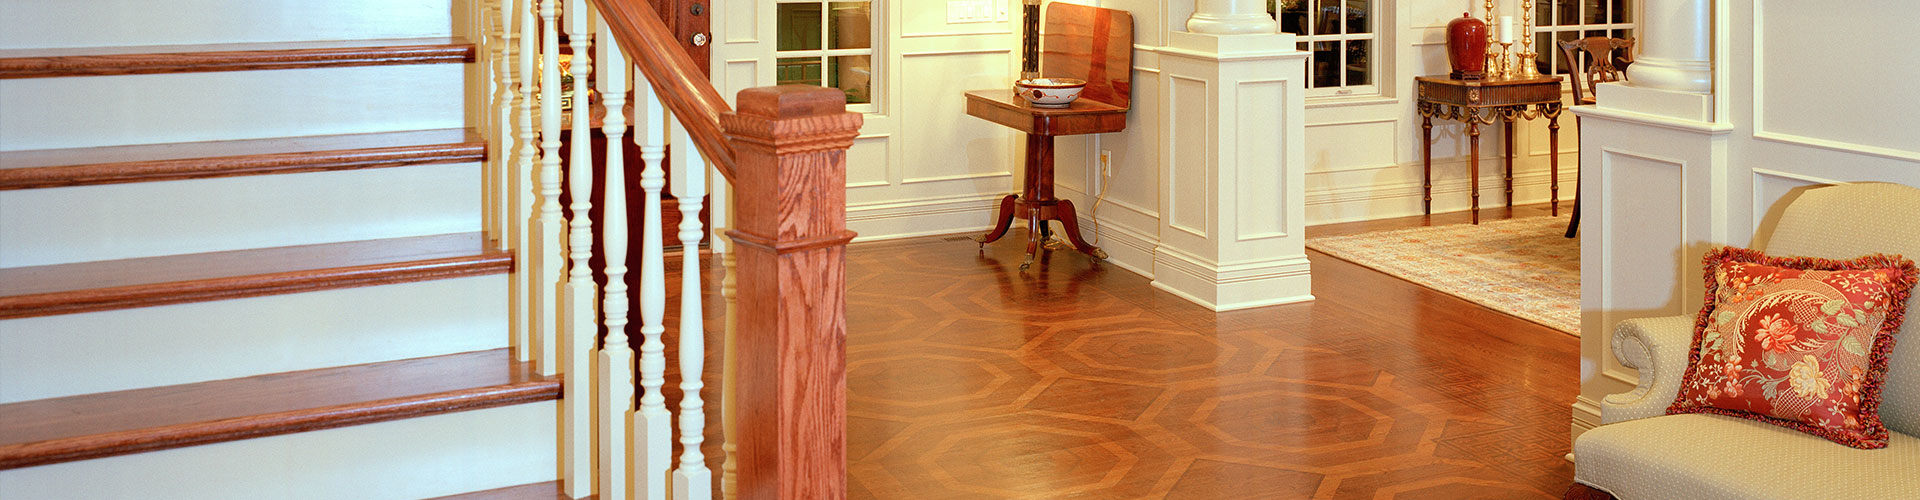 Hardwood Flooring Installation, West Chester Hardwood Flooring